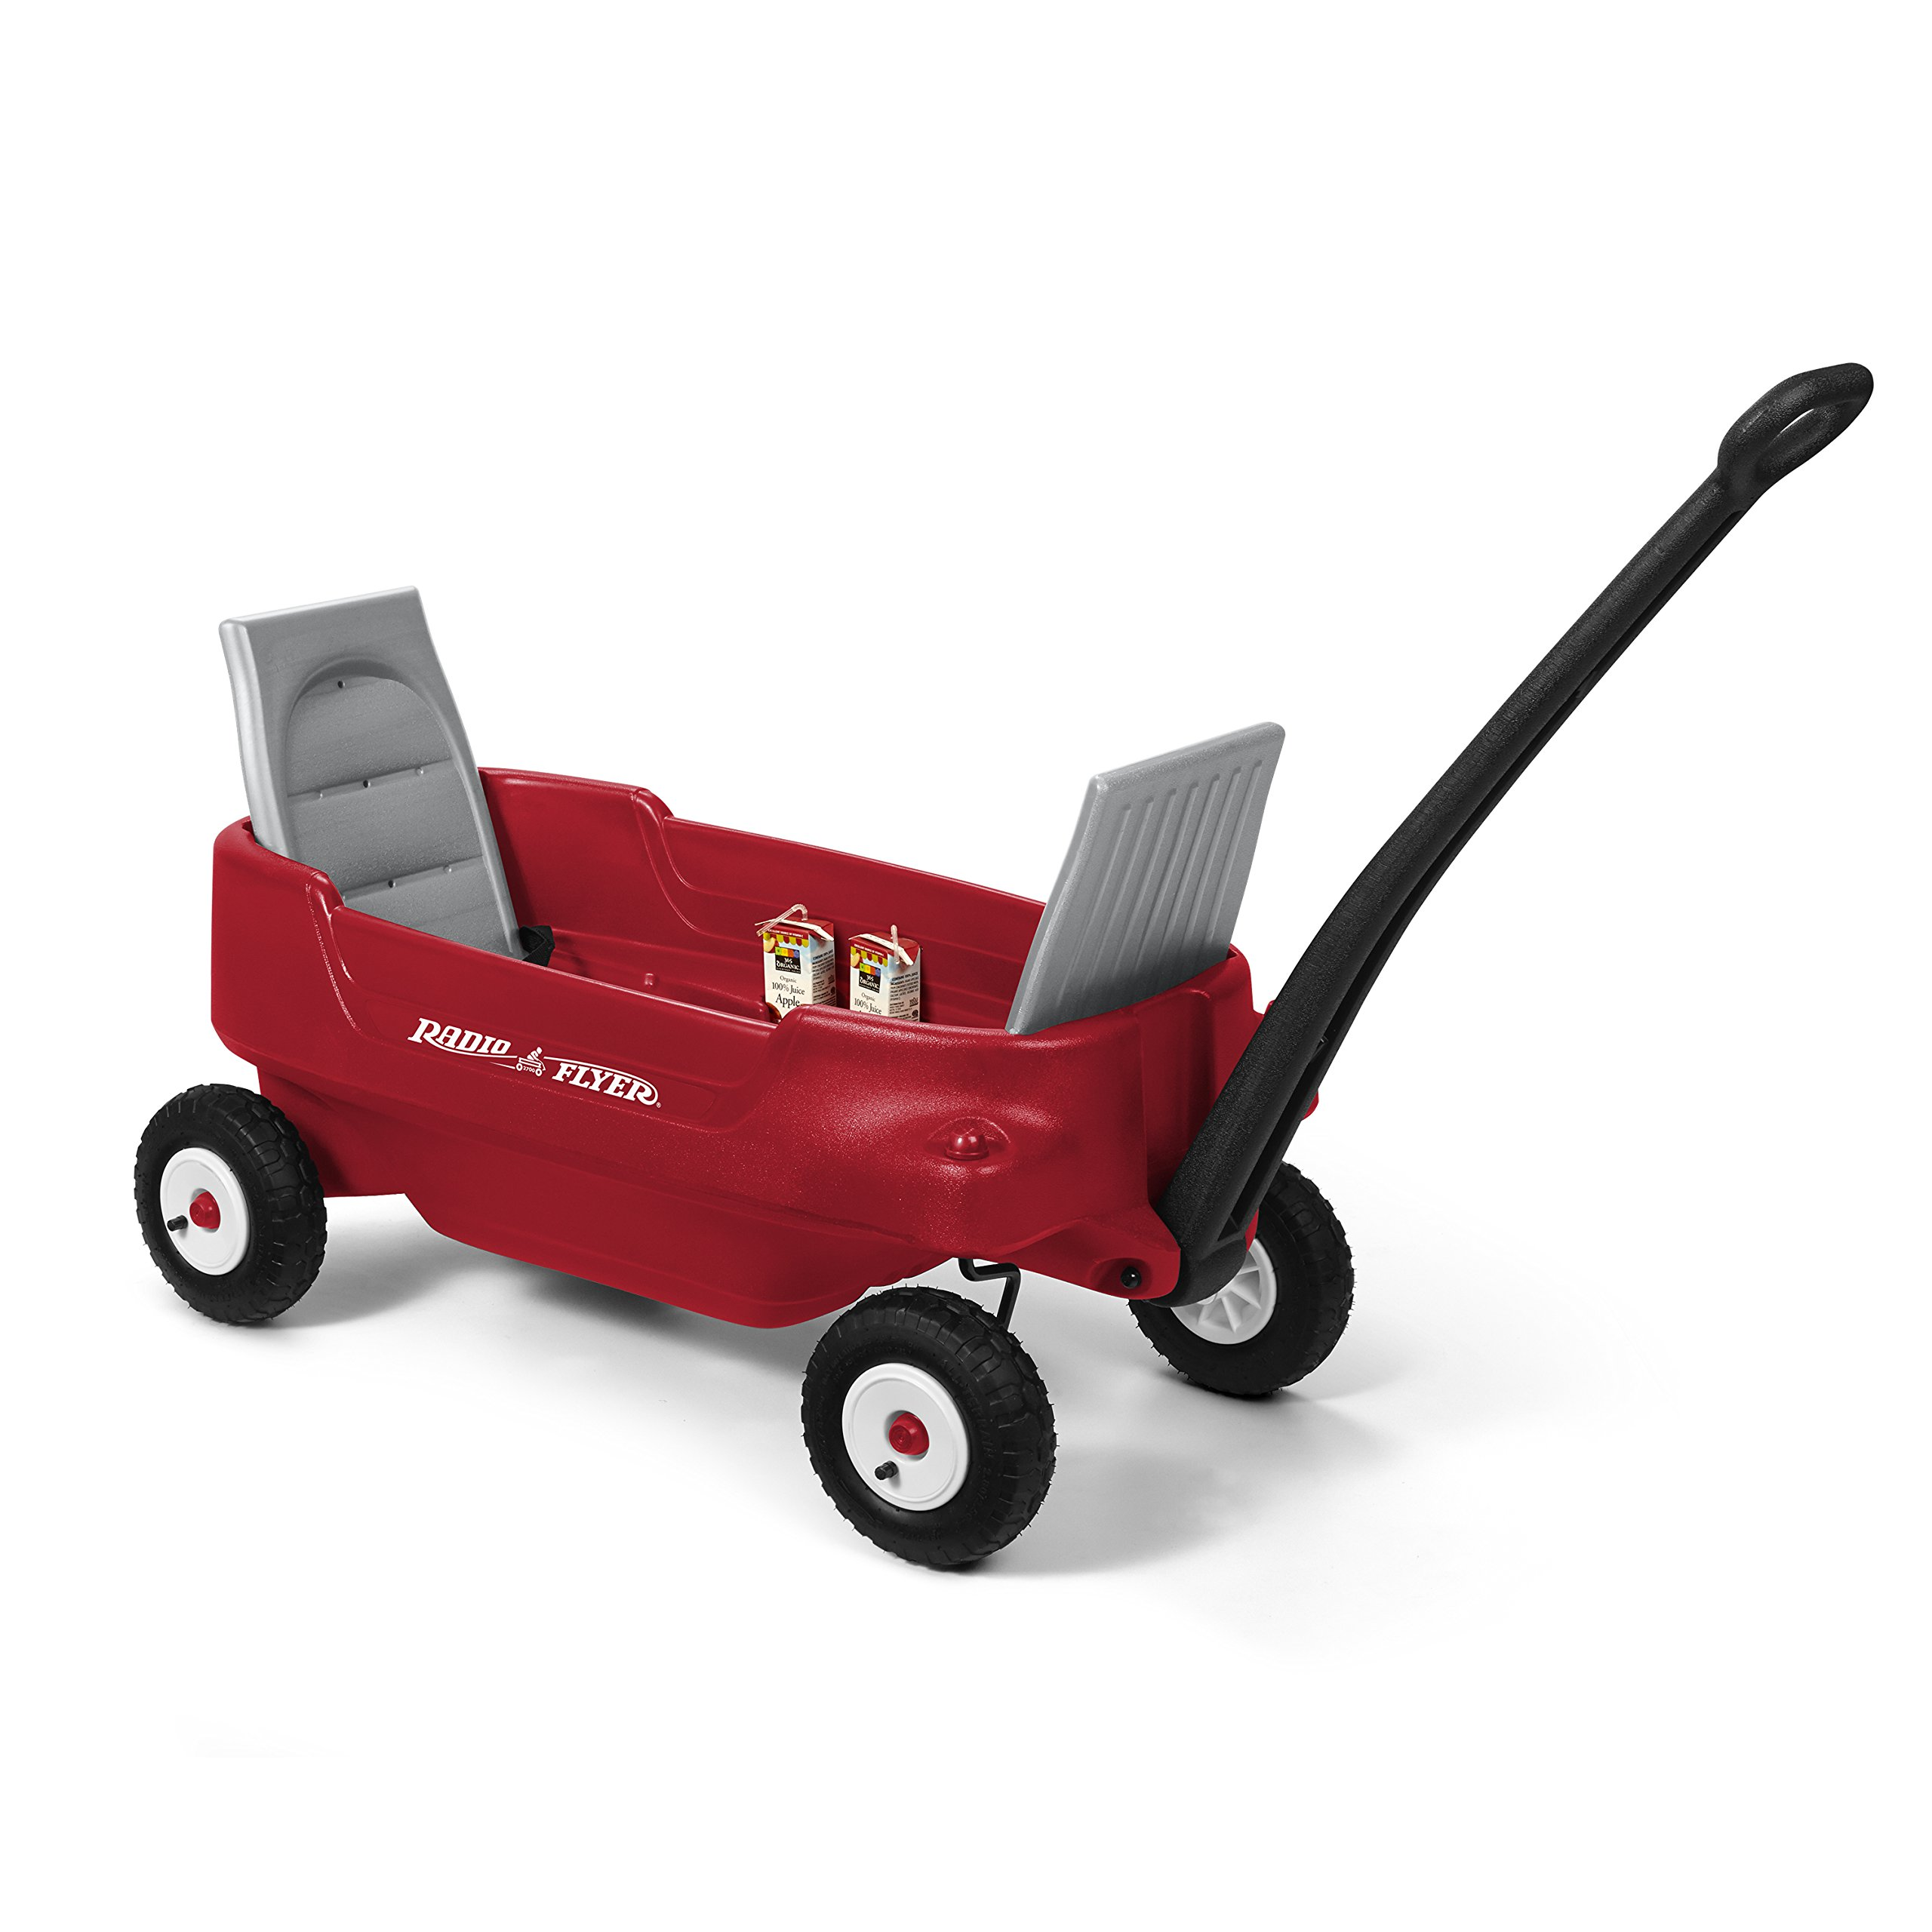 Radio Flyer All-Terrain Pathfinder Wagon Ride On, Red by Radio Flyer